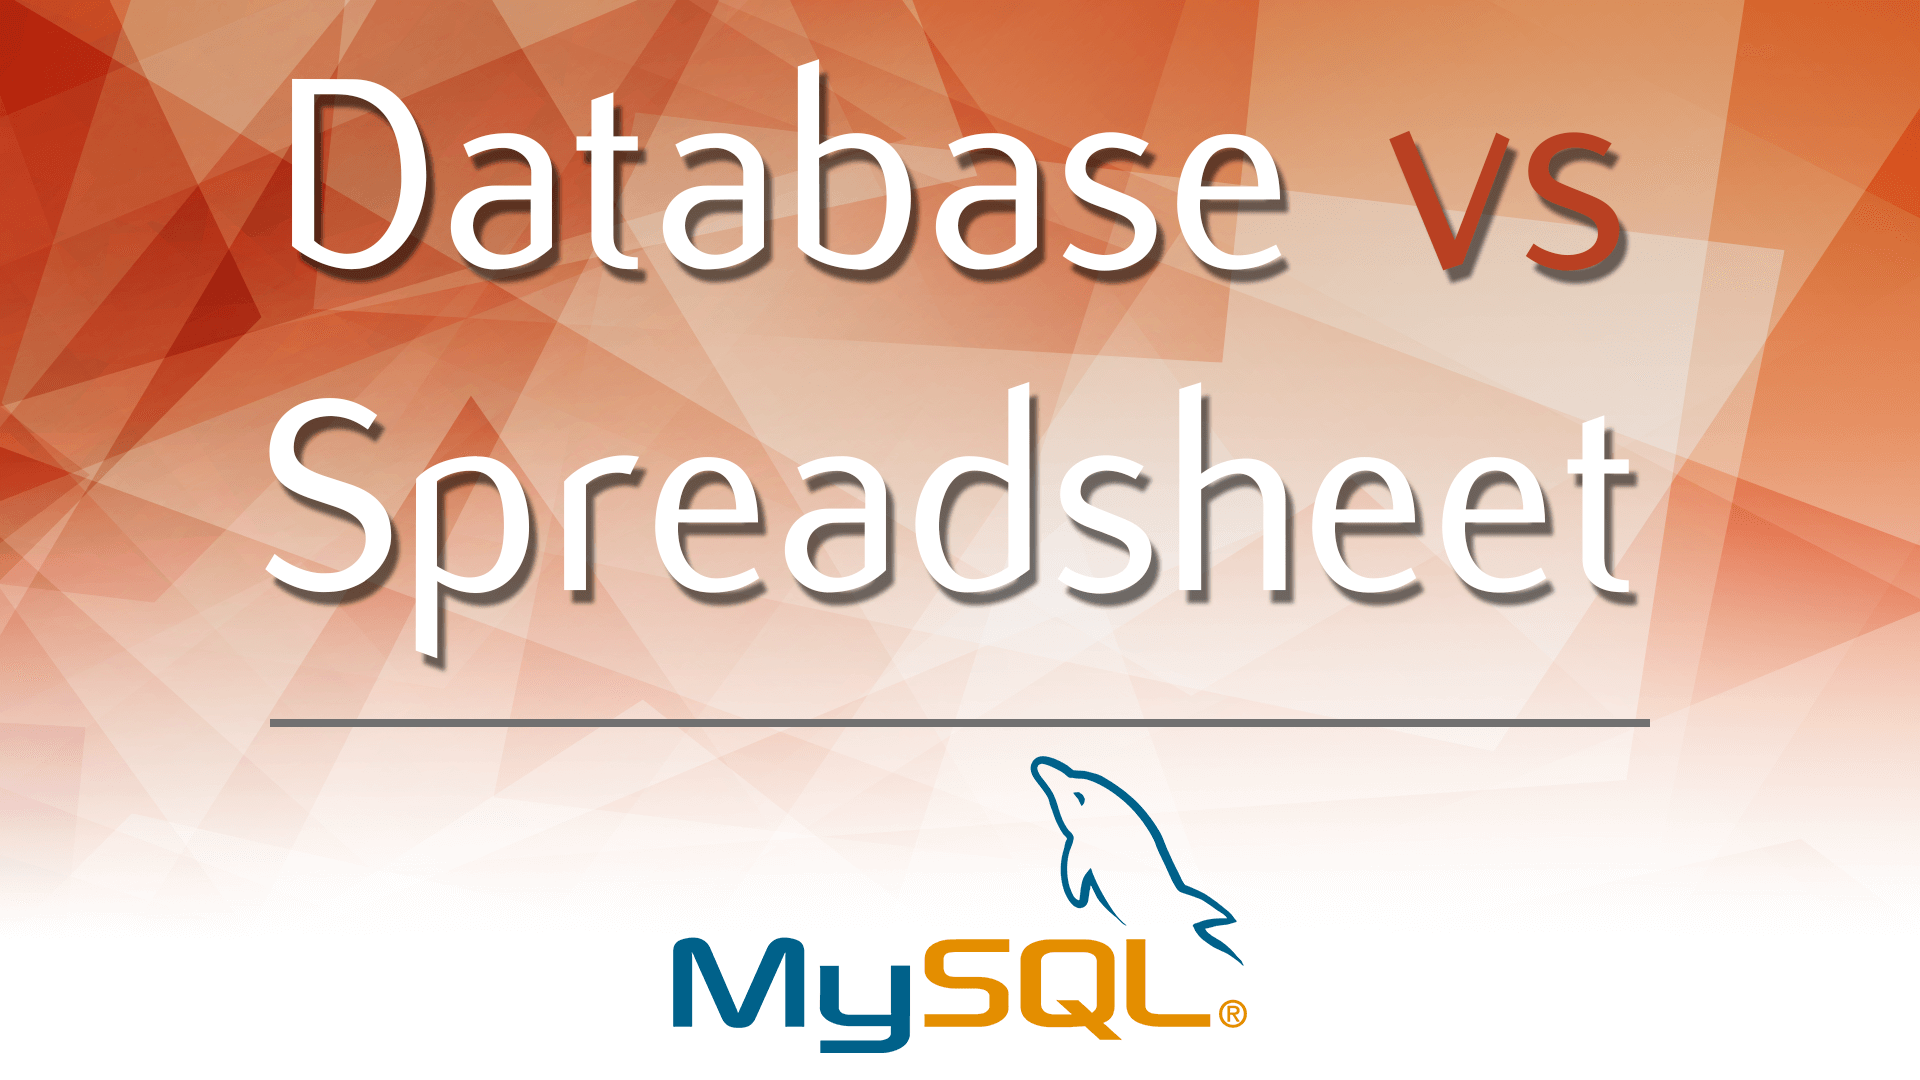 Database Vs Spreadsheet Advantages And Disadvantages